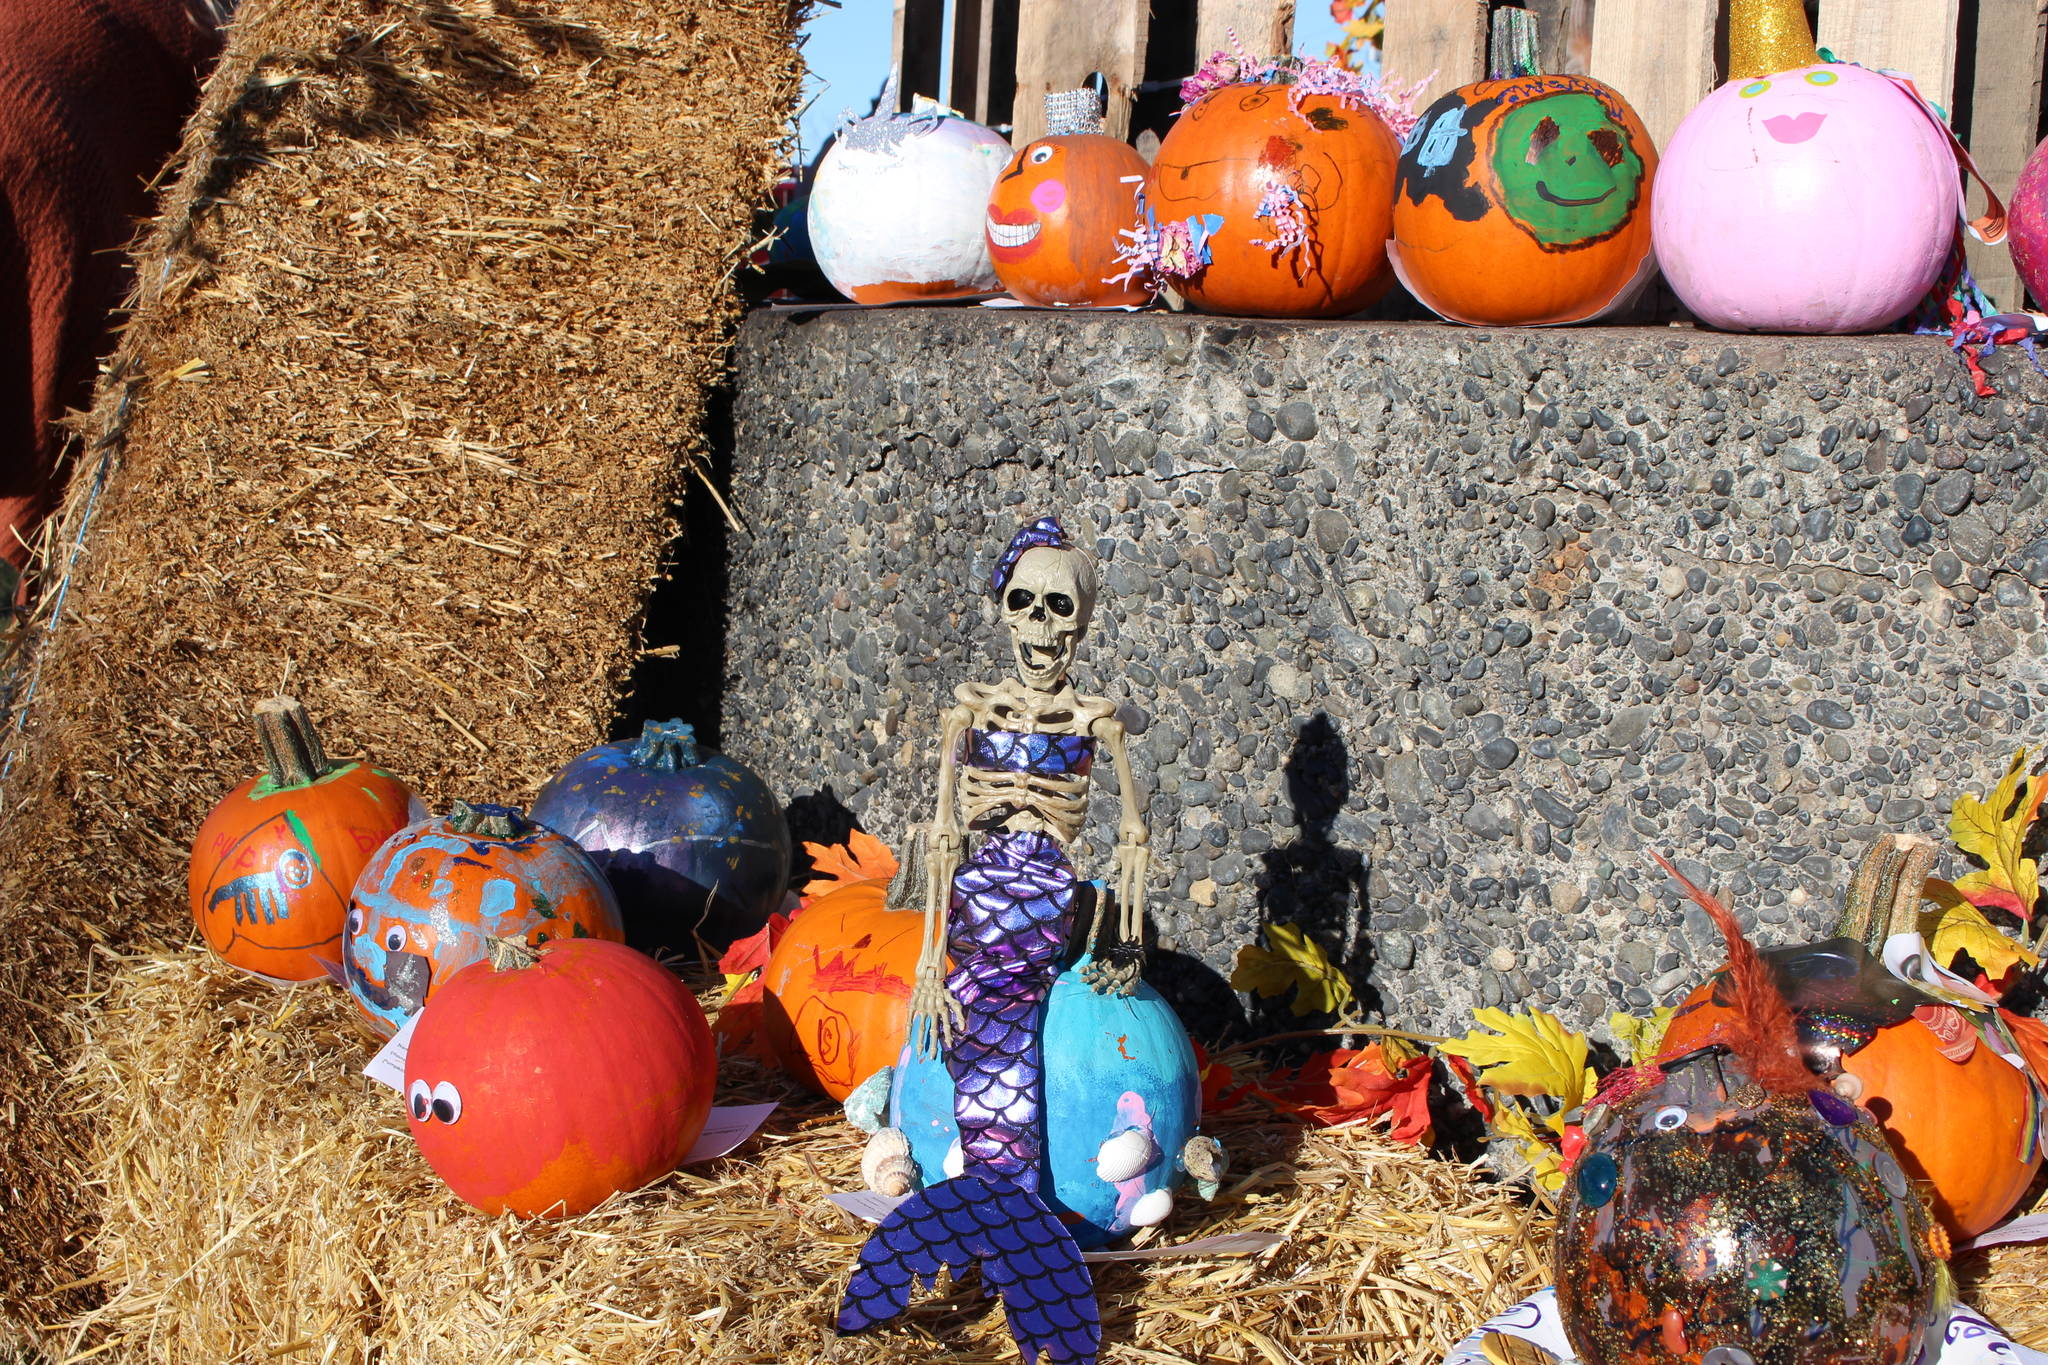 Some of the pumpkins submitted to the pumpkin decorating contest are seen here during the 5th annual Kenai Fall Pumpkin Festival in Kenai, Alaska on Oct. 10, 2020. (Photo by Brian Mazurek/Peninsula Clarion)